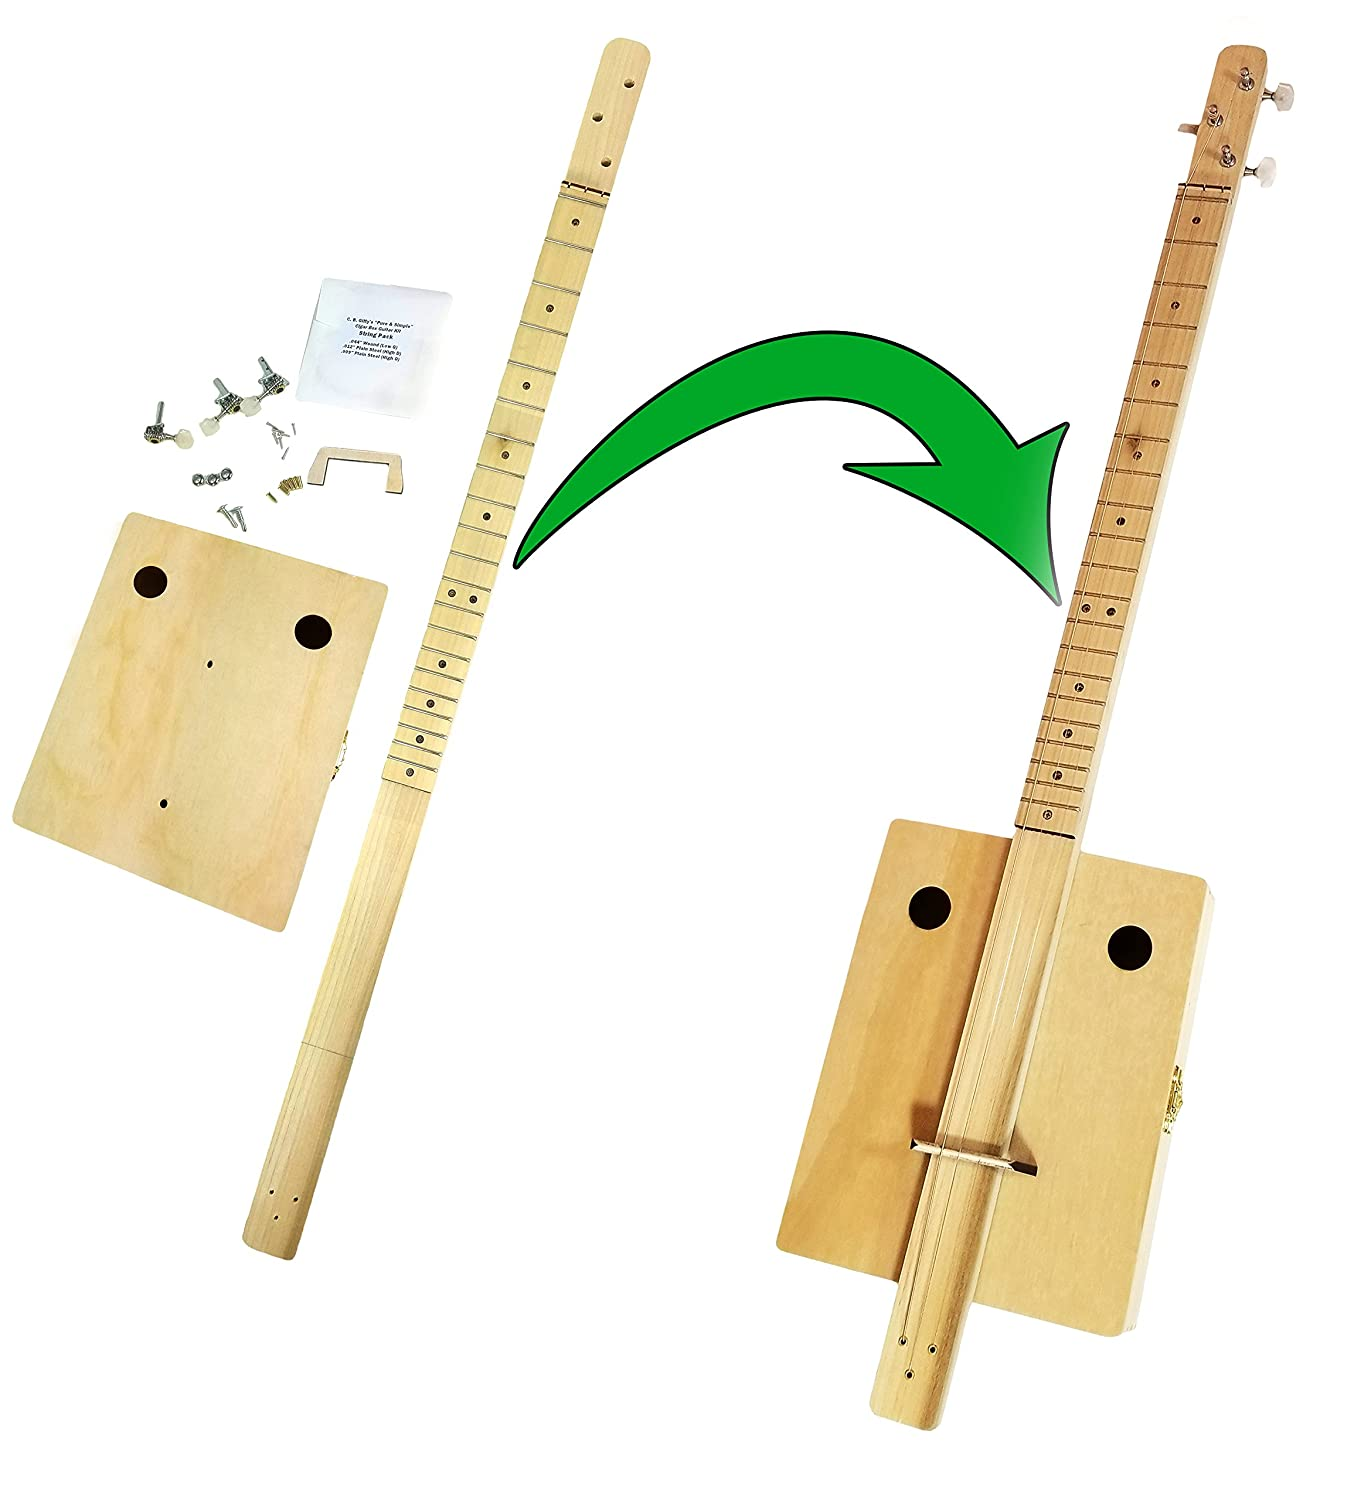 Fretted'Pure & Simple' 3-string Cigar Box Guitar Kit - the Easiest CBG Kit to Build, Bar None! C. B. Gitty Crafter Supply 36-013-01